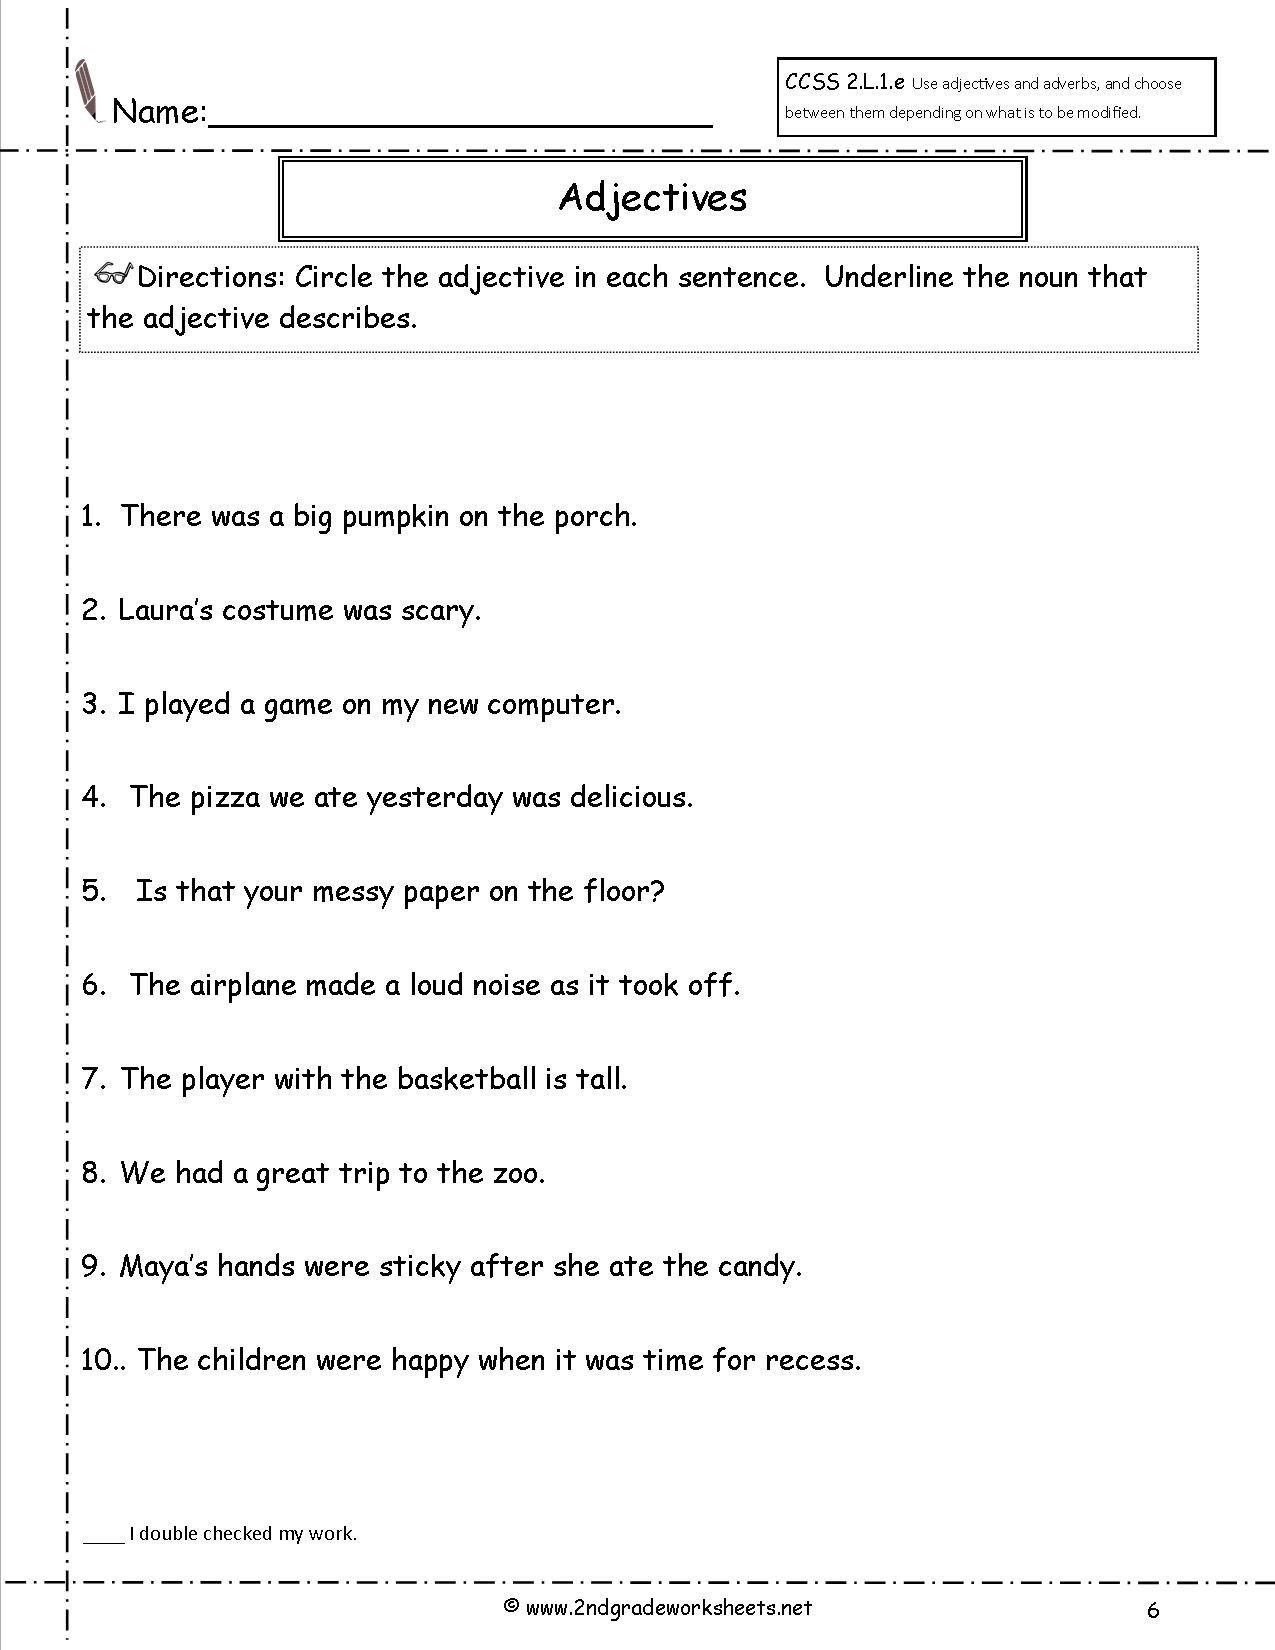 Adjectives Worksheets 3rd Grade Free Using Adjectives Worksheets